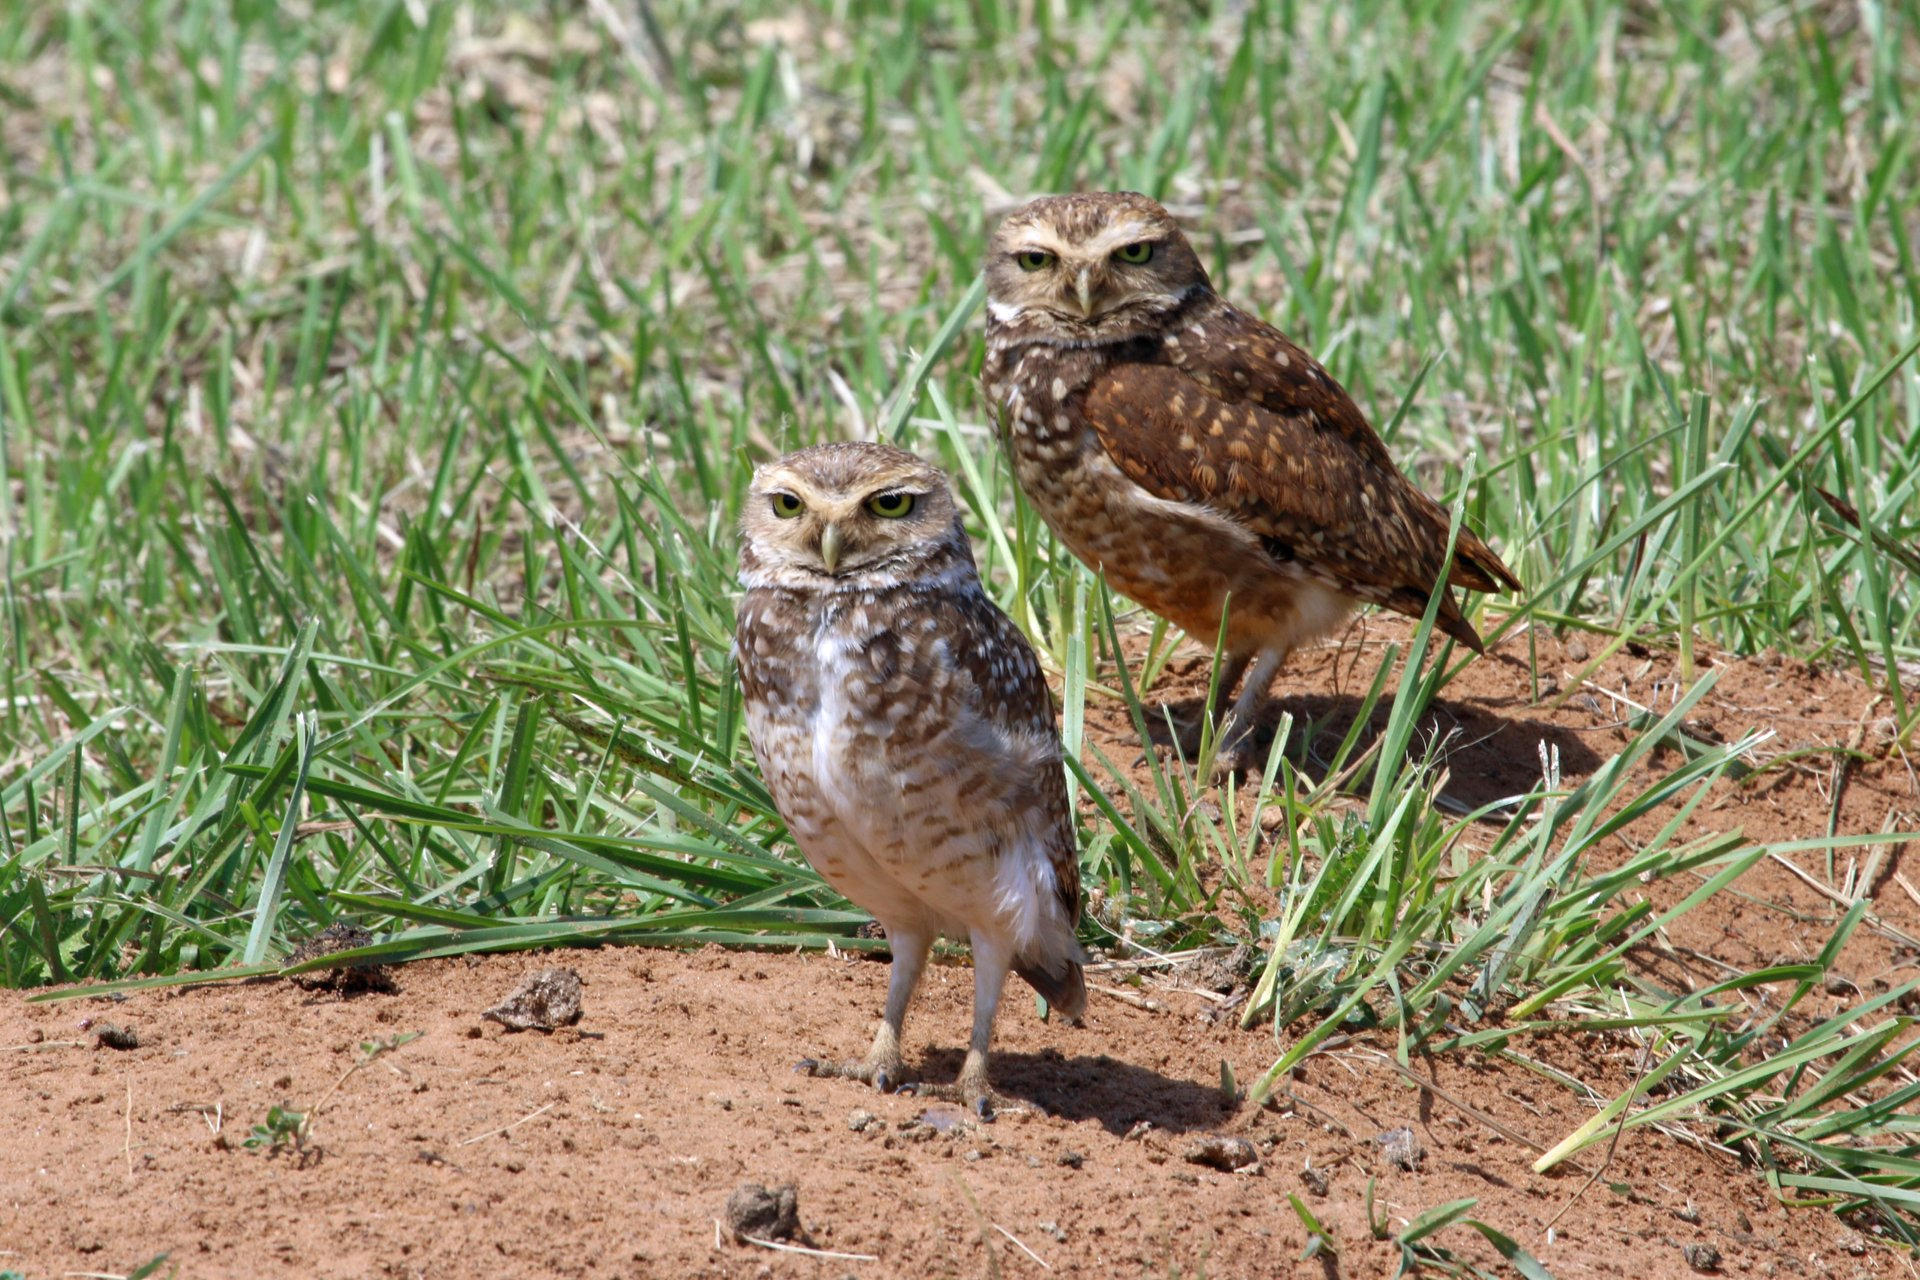 Burrowing Owl Nesting Season in Argentina 2020 - Best Time